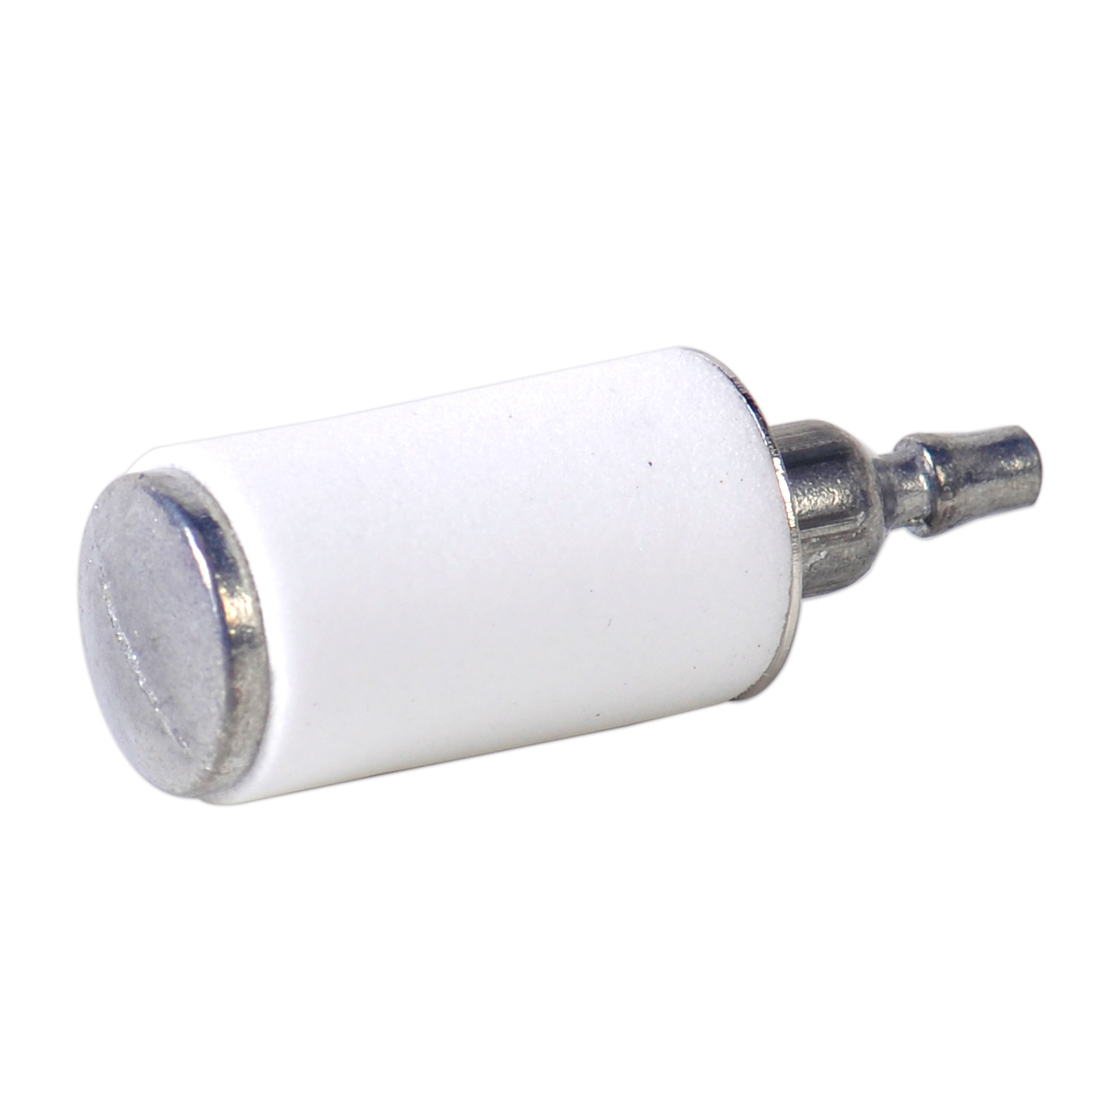 Poulan Chainsaw Fuel Filter Replacement